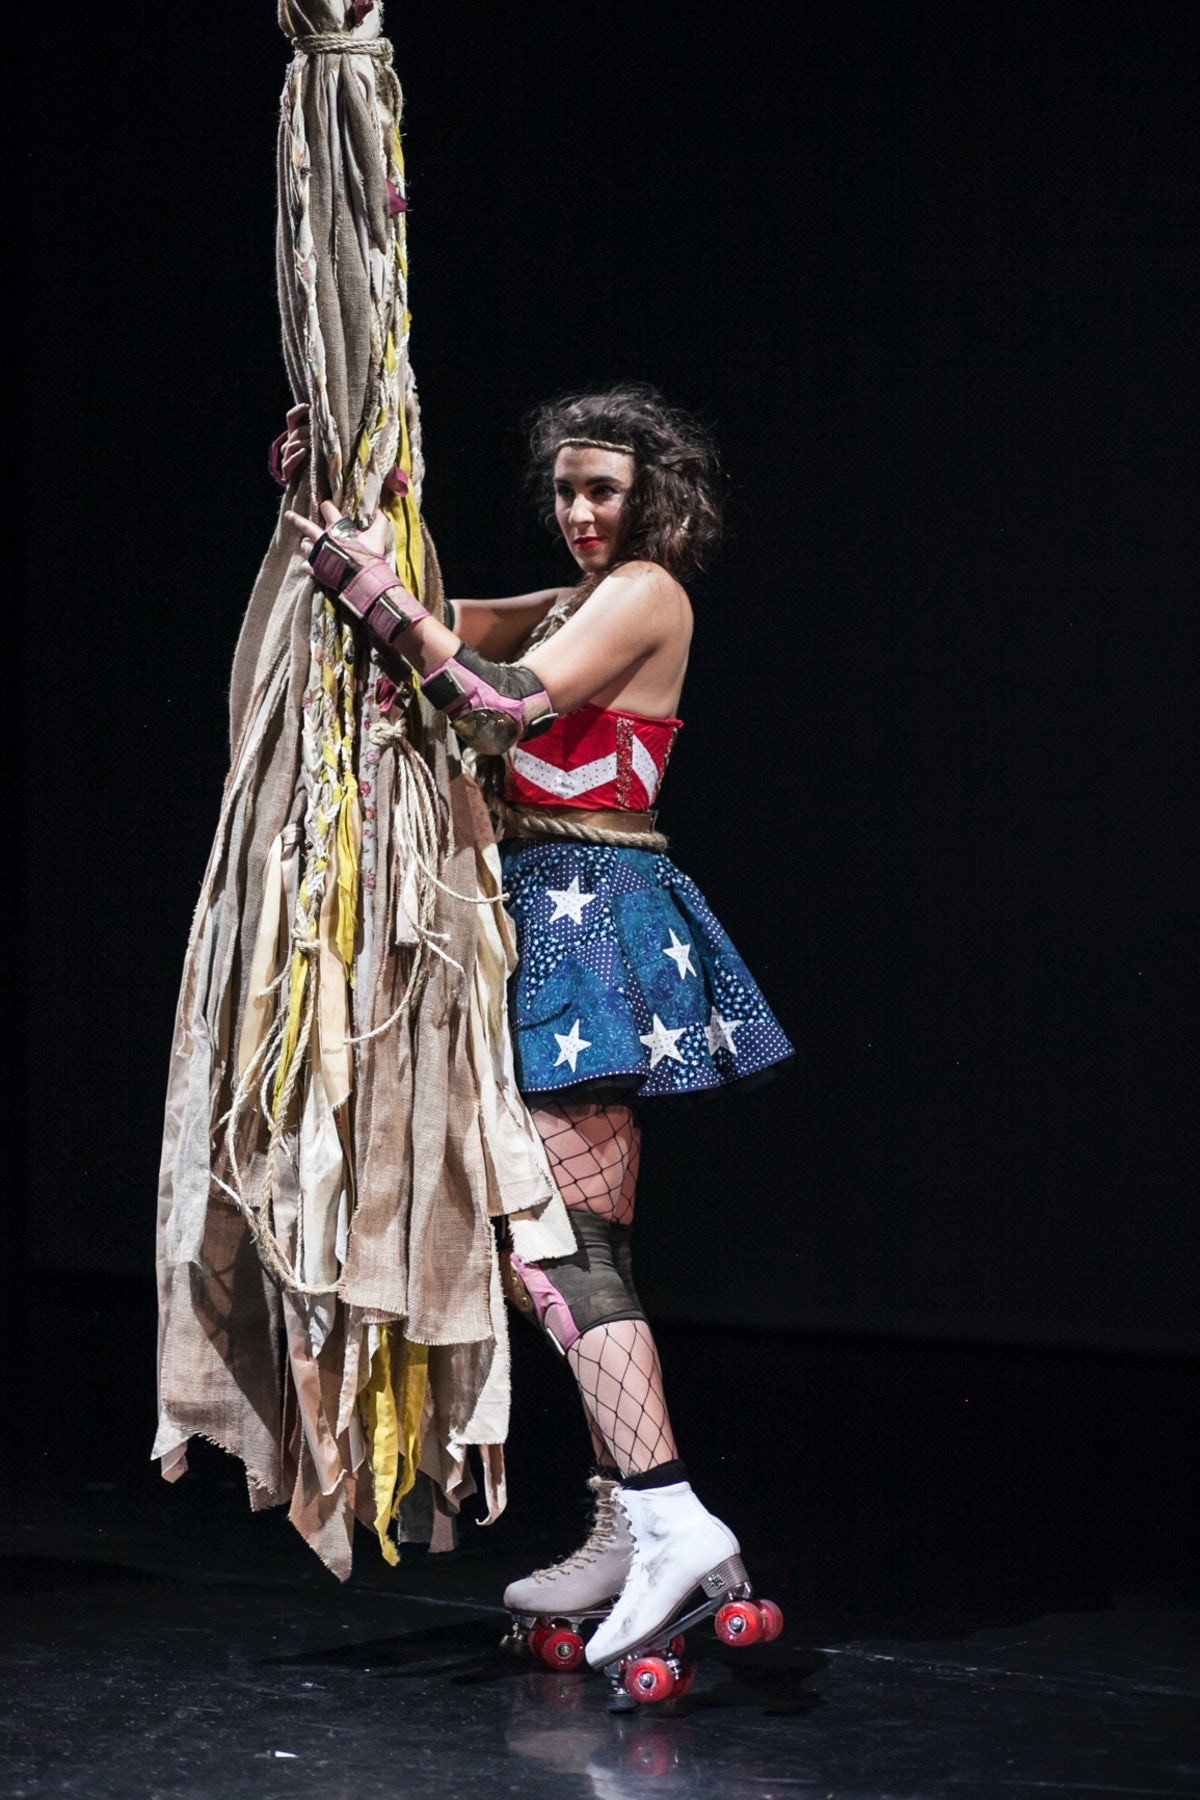 Fashion Tells Stories: Costume Design For Performance